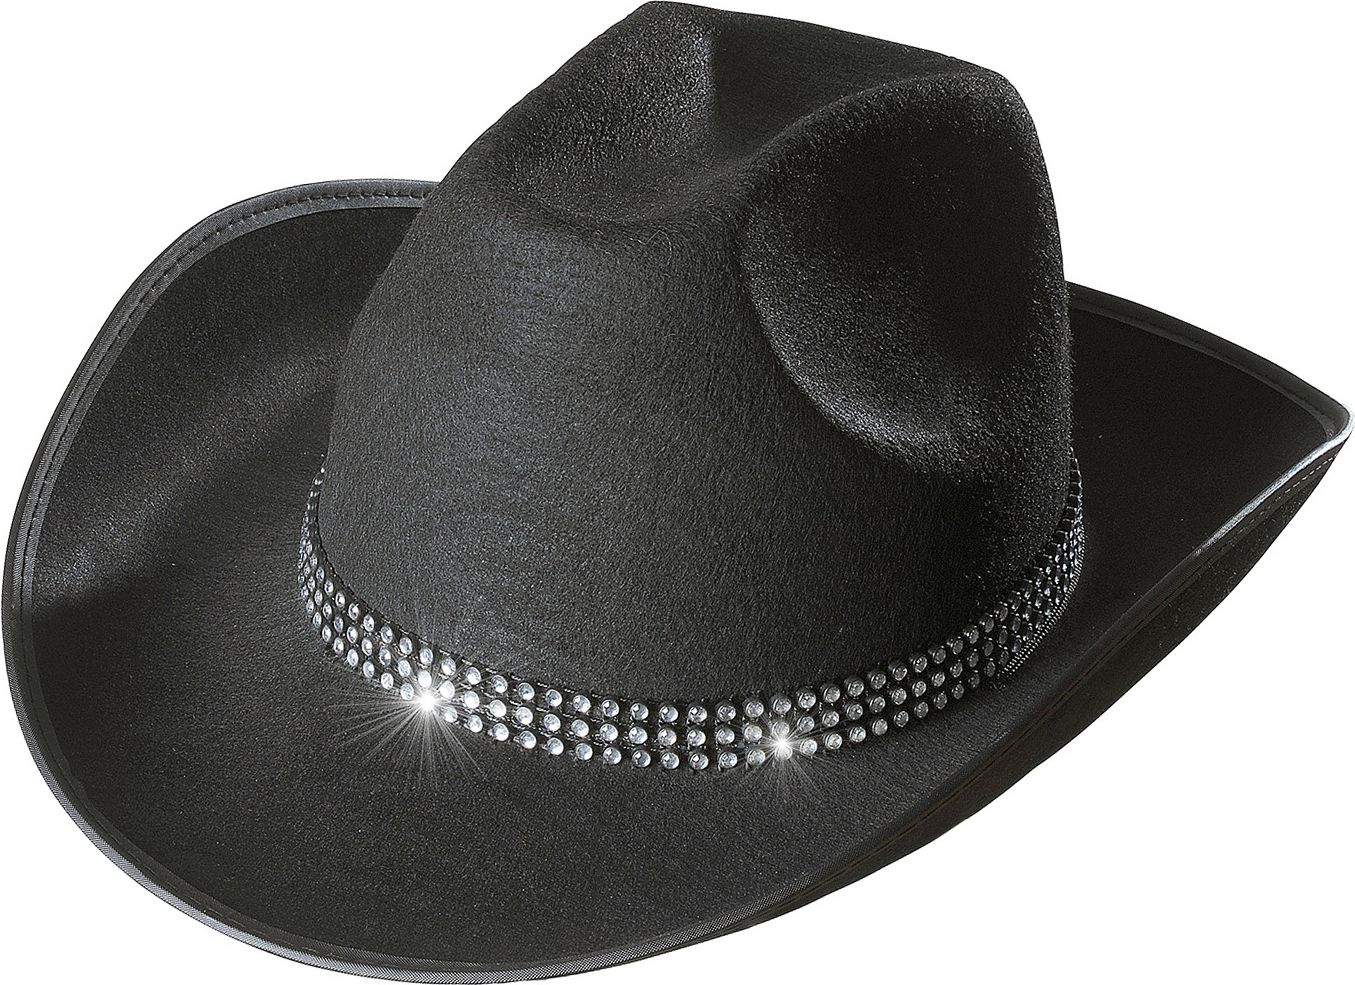 Zwarte cowboyhoed met strass band